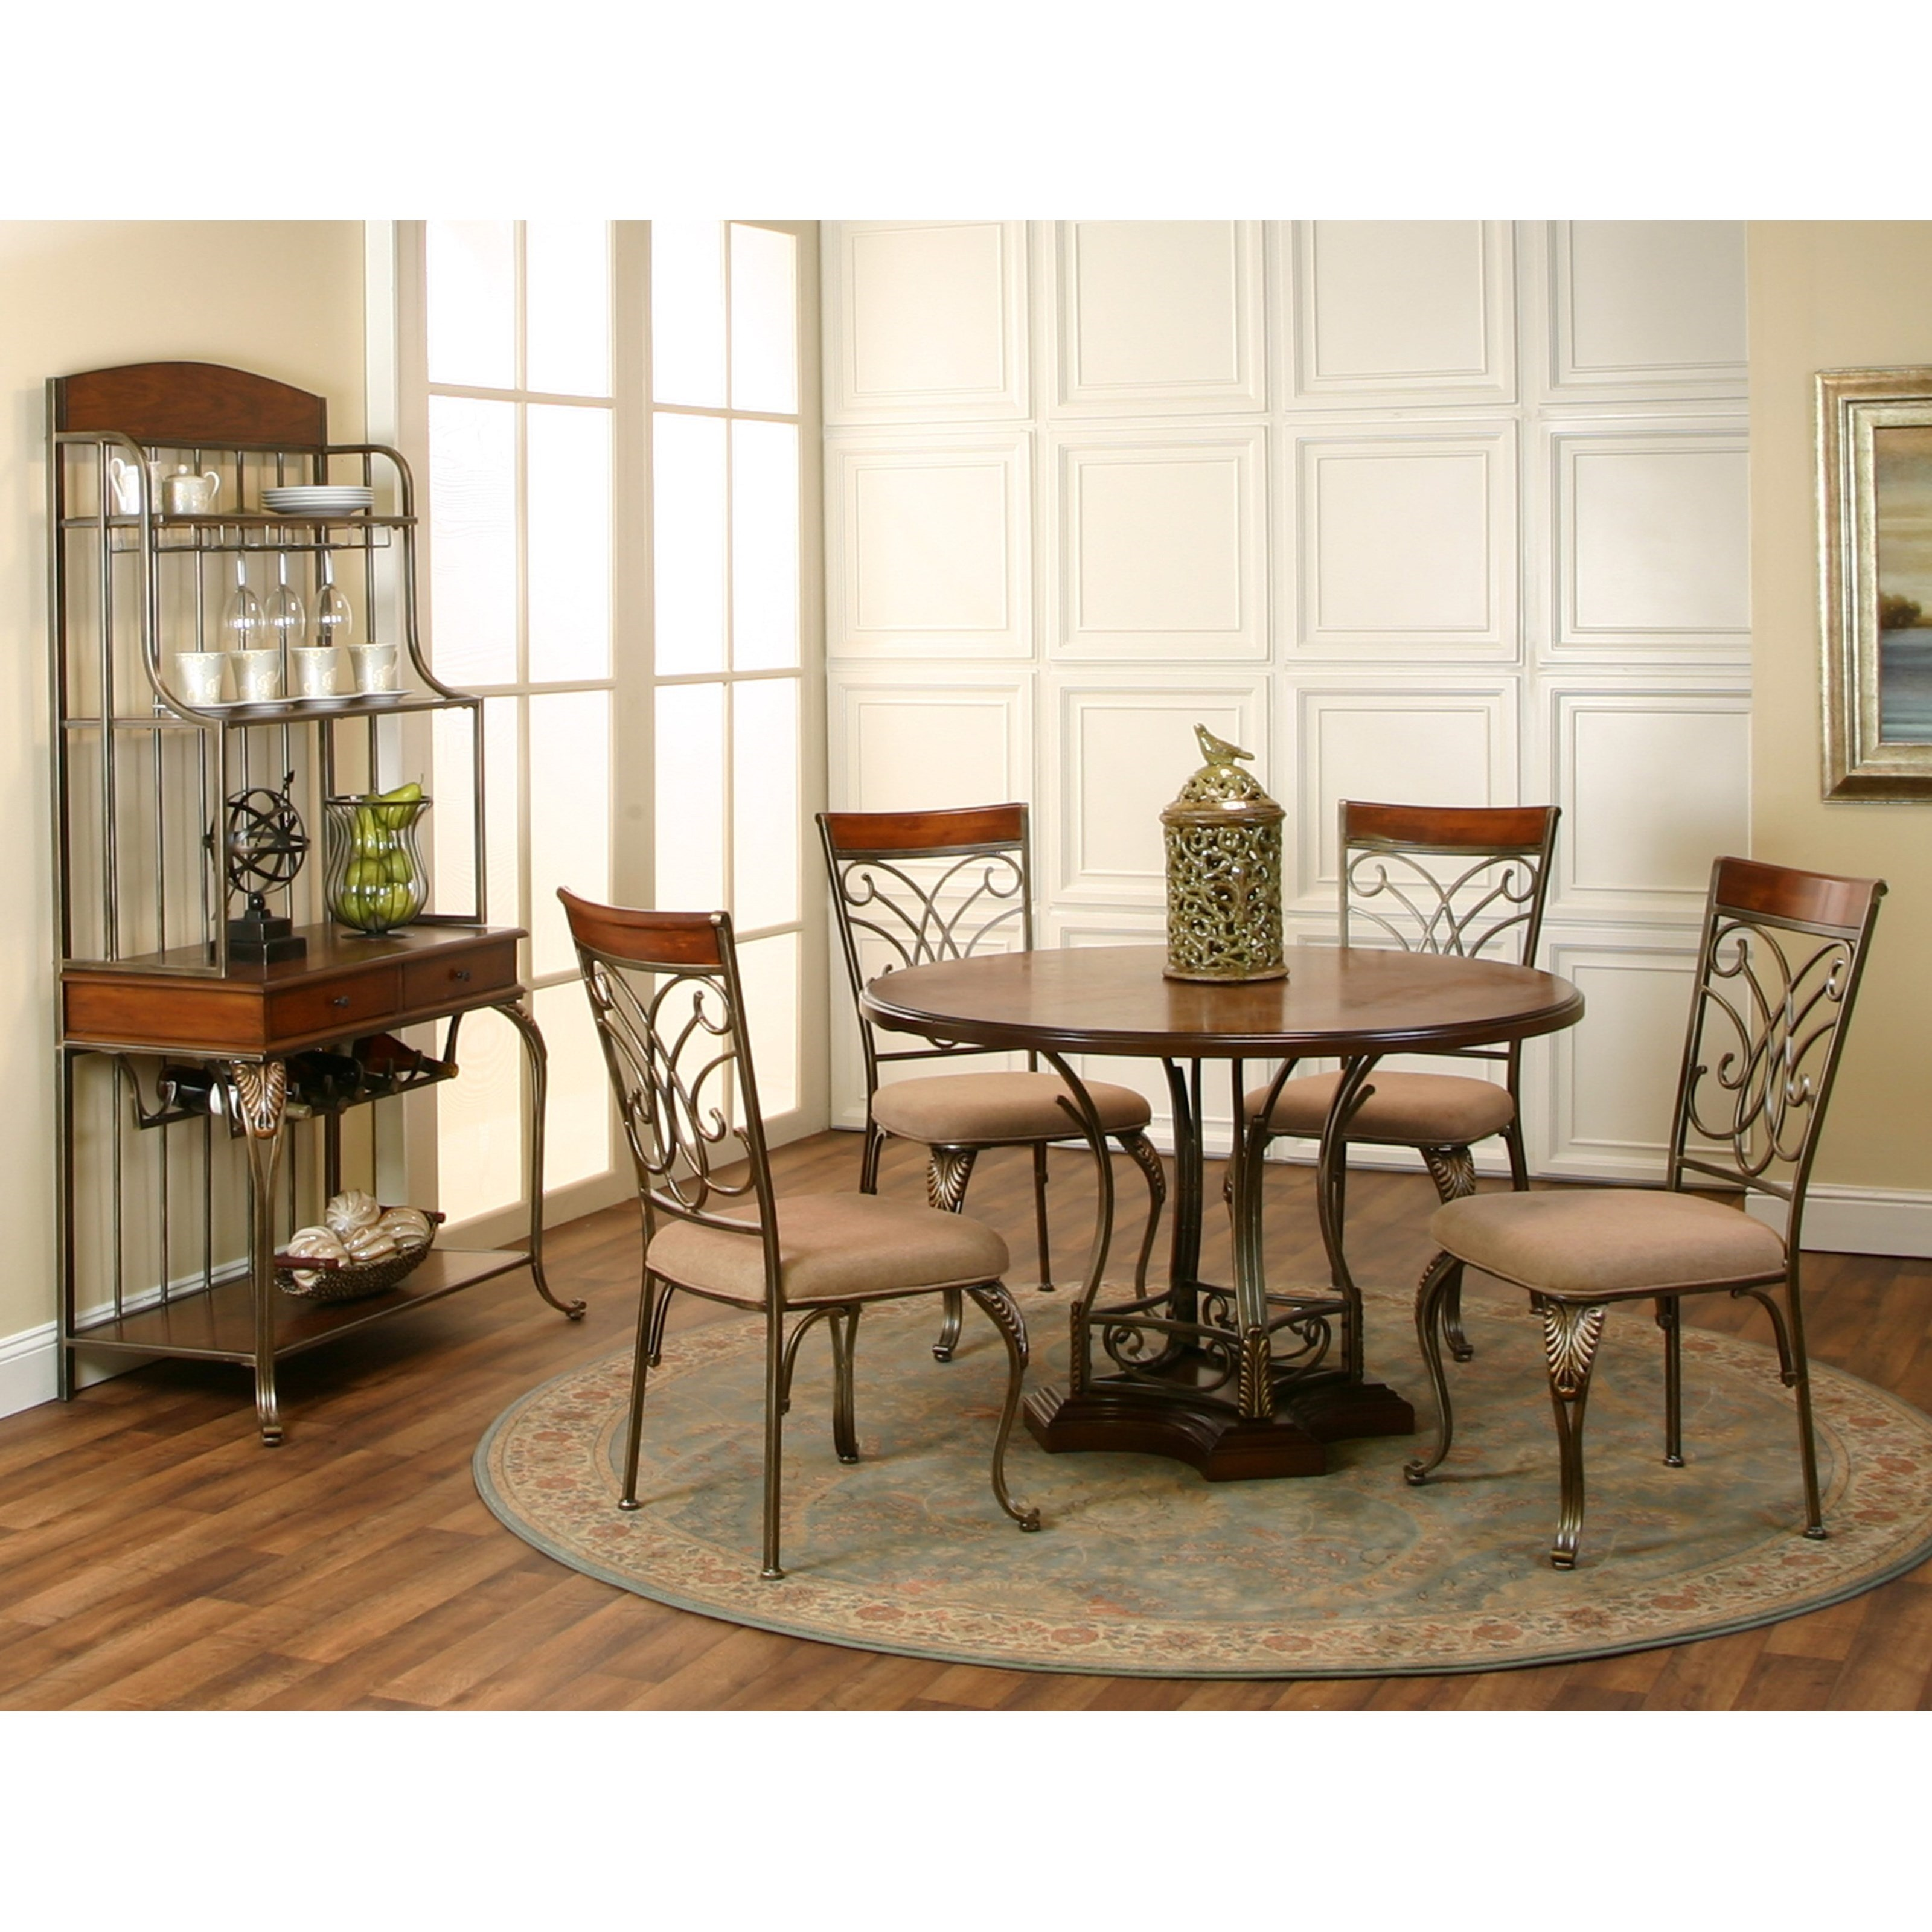 Casual Dining Room Furniture: Cramco, Inc Harlow Casual Dining Room Group